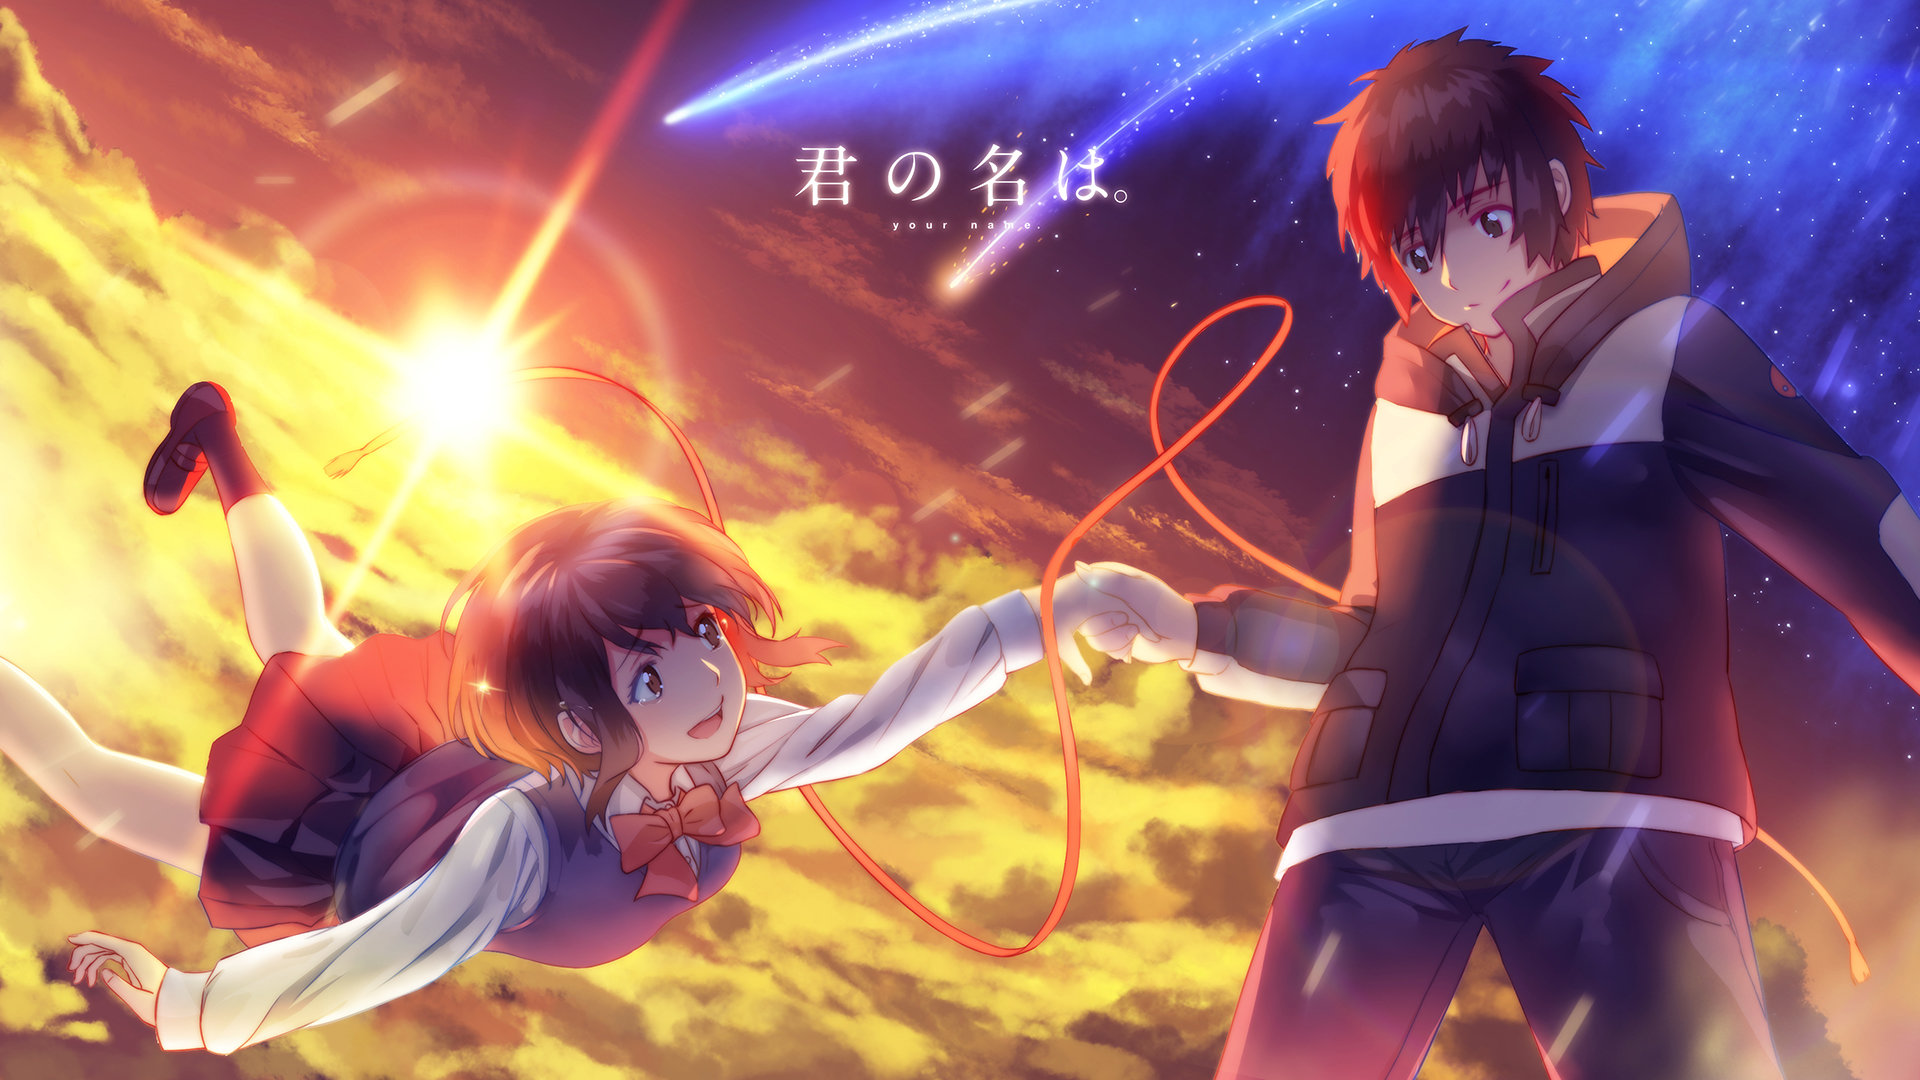 High Resolution Your Name Full Hd 1080p Wallpaper Id Your Name Wallpaper 4k 1920x1080 Download Hd Wallpaper Wallpapertip